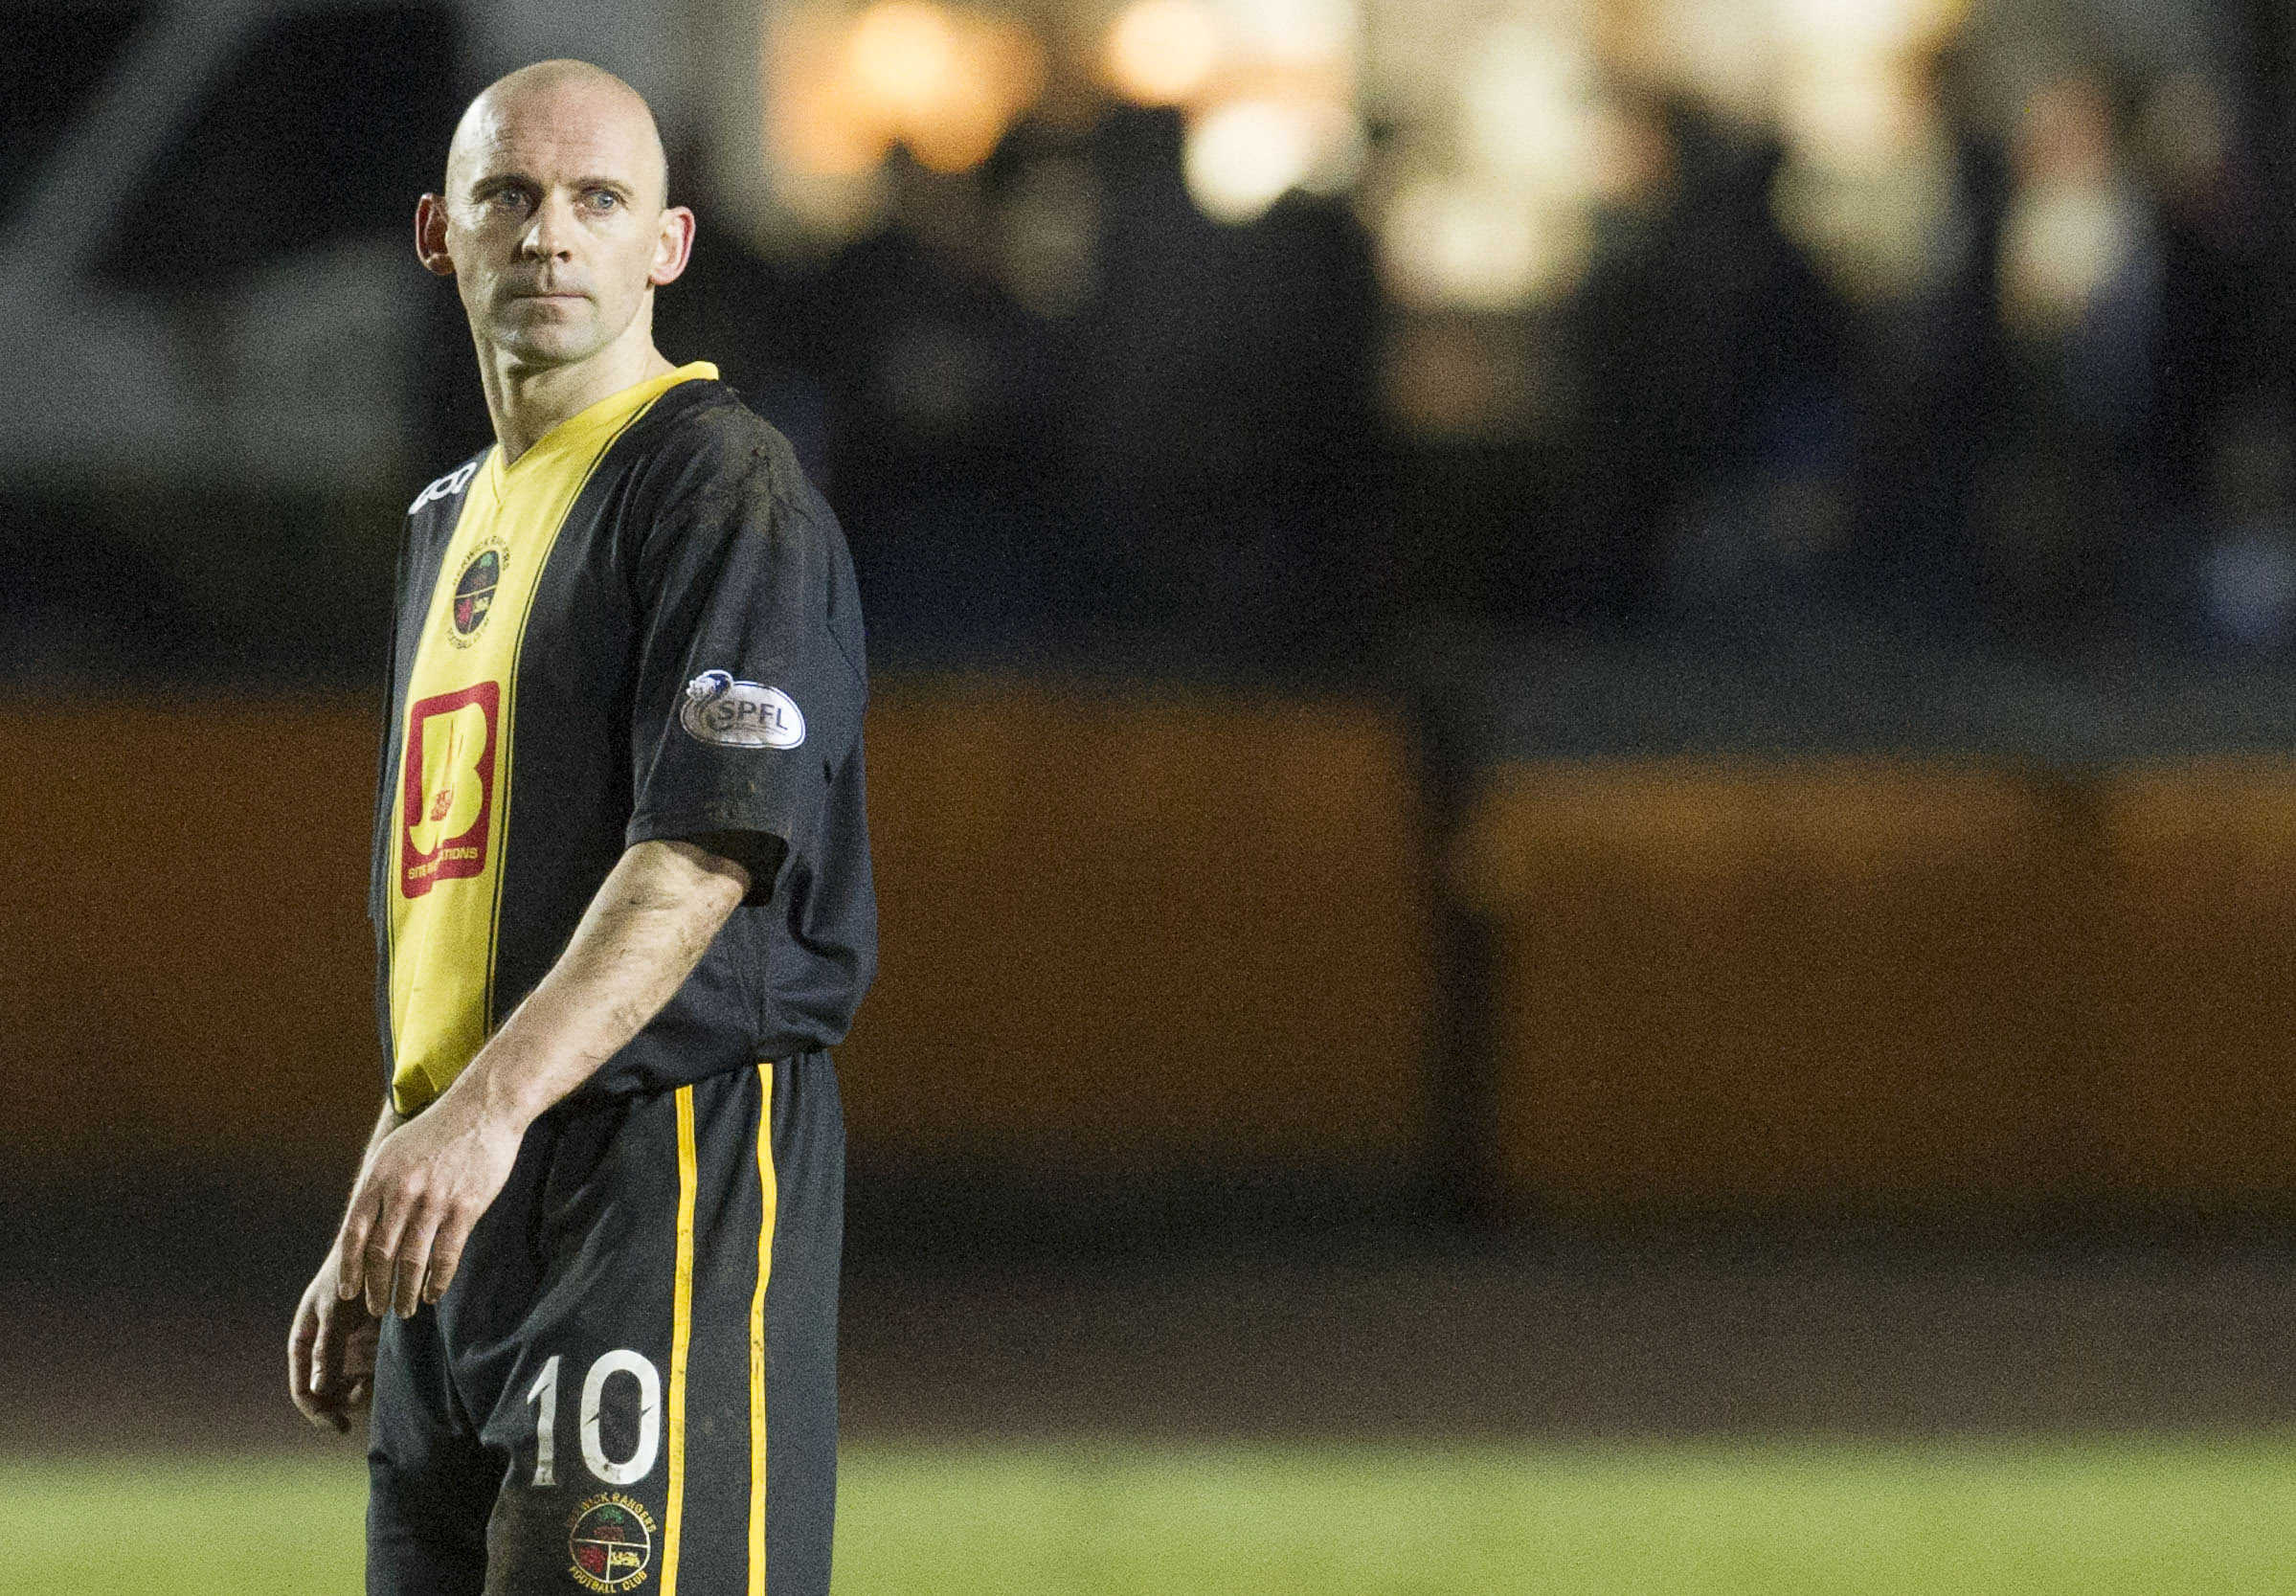 Former Scotland midfielder Colin Cameron joins Ian Murray as Airdrieonians' new assistant manager